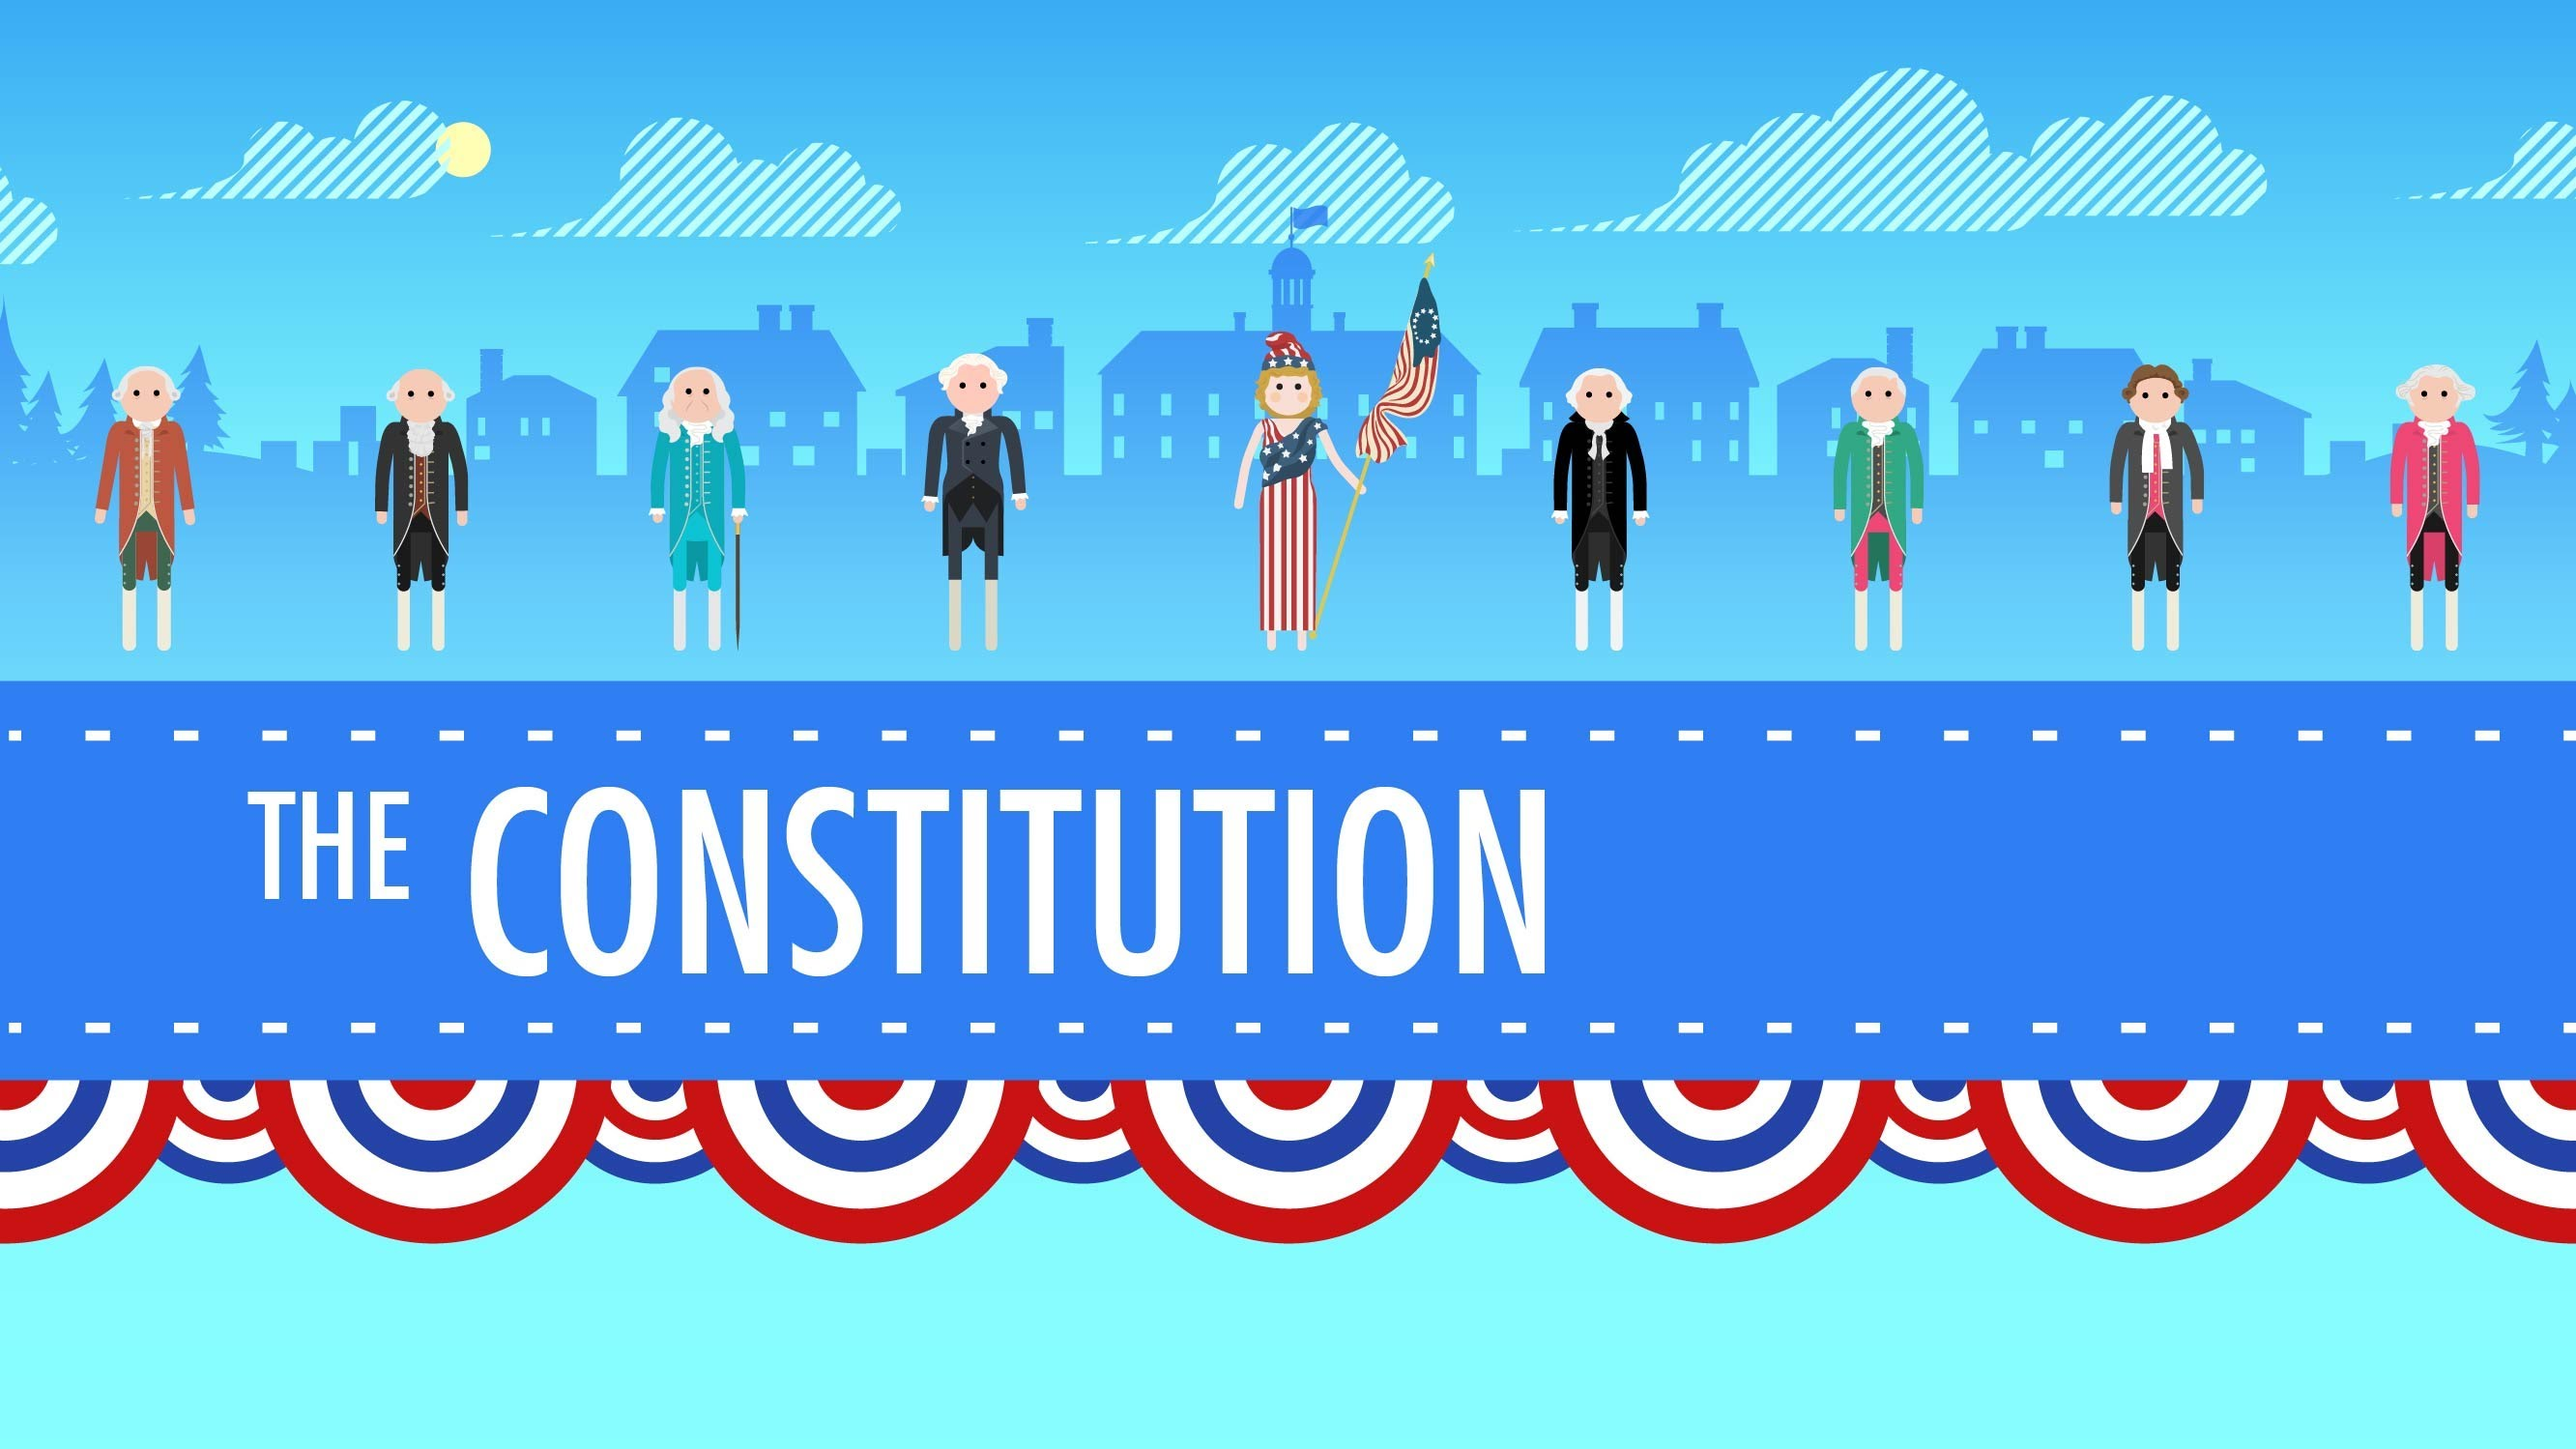 the constitution America's first constitution, the articles of confederation, was ratified in 1781, a time when the nation was a loose confederation of states, each operating like independent countriesthe.